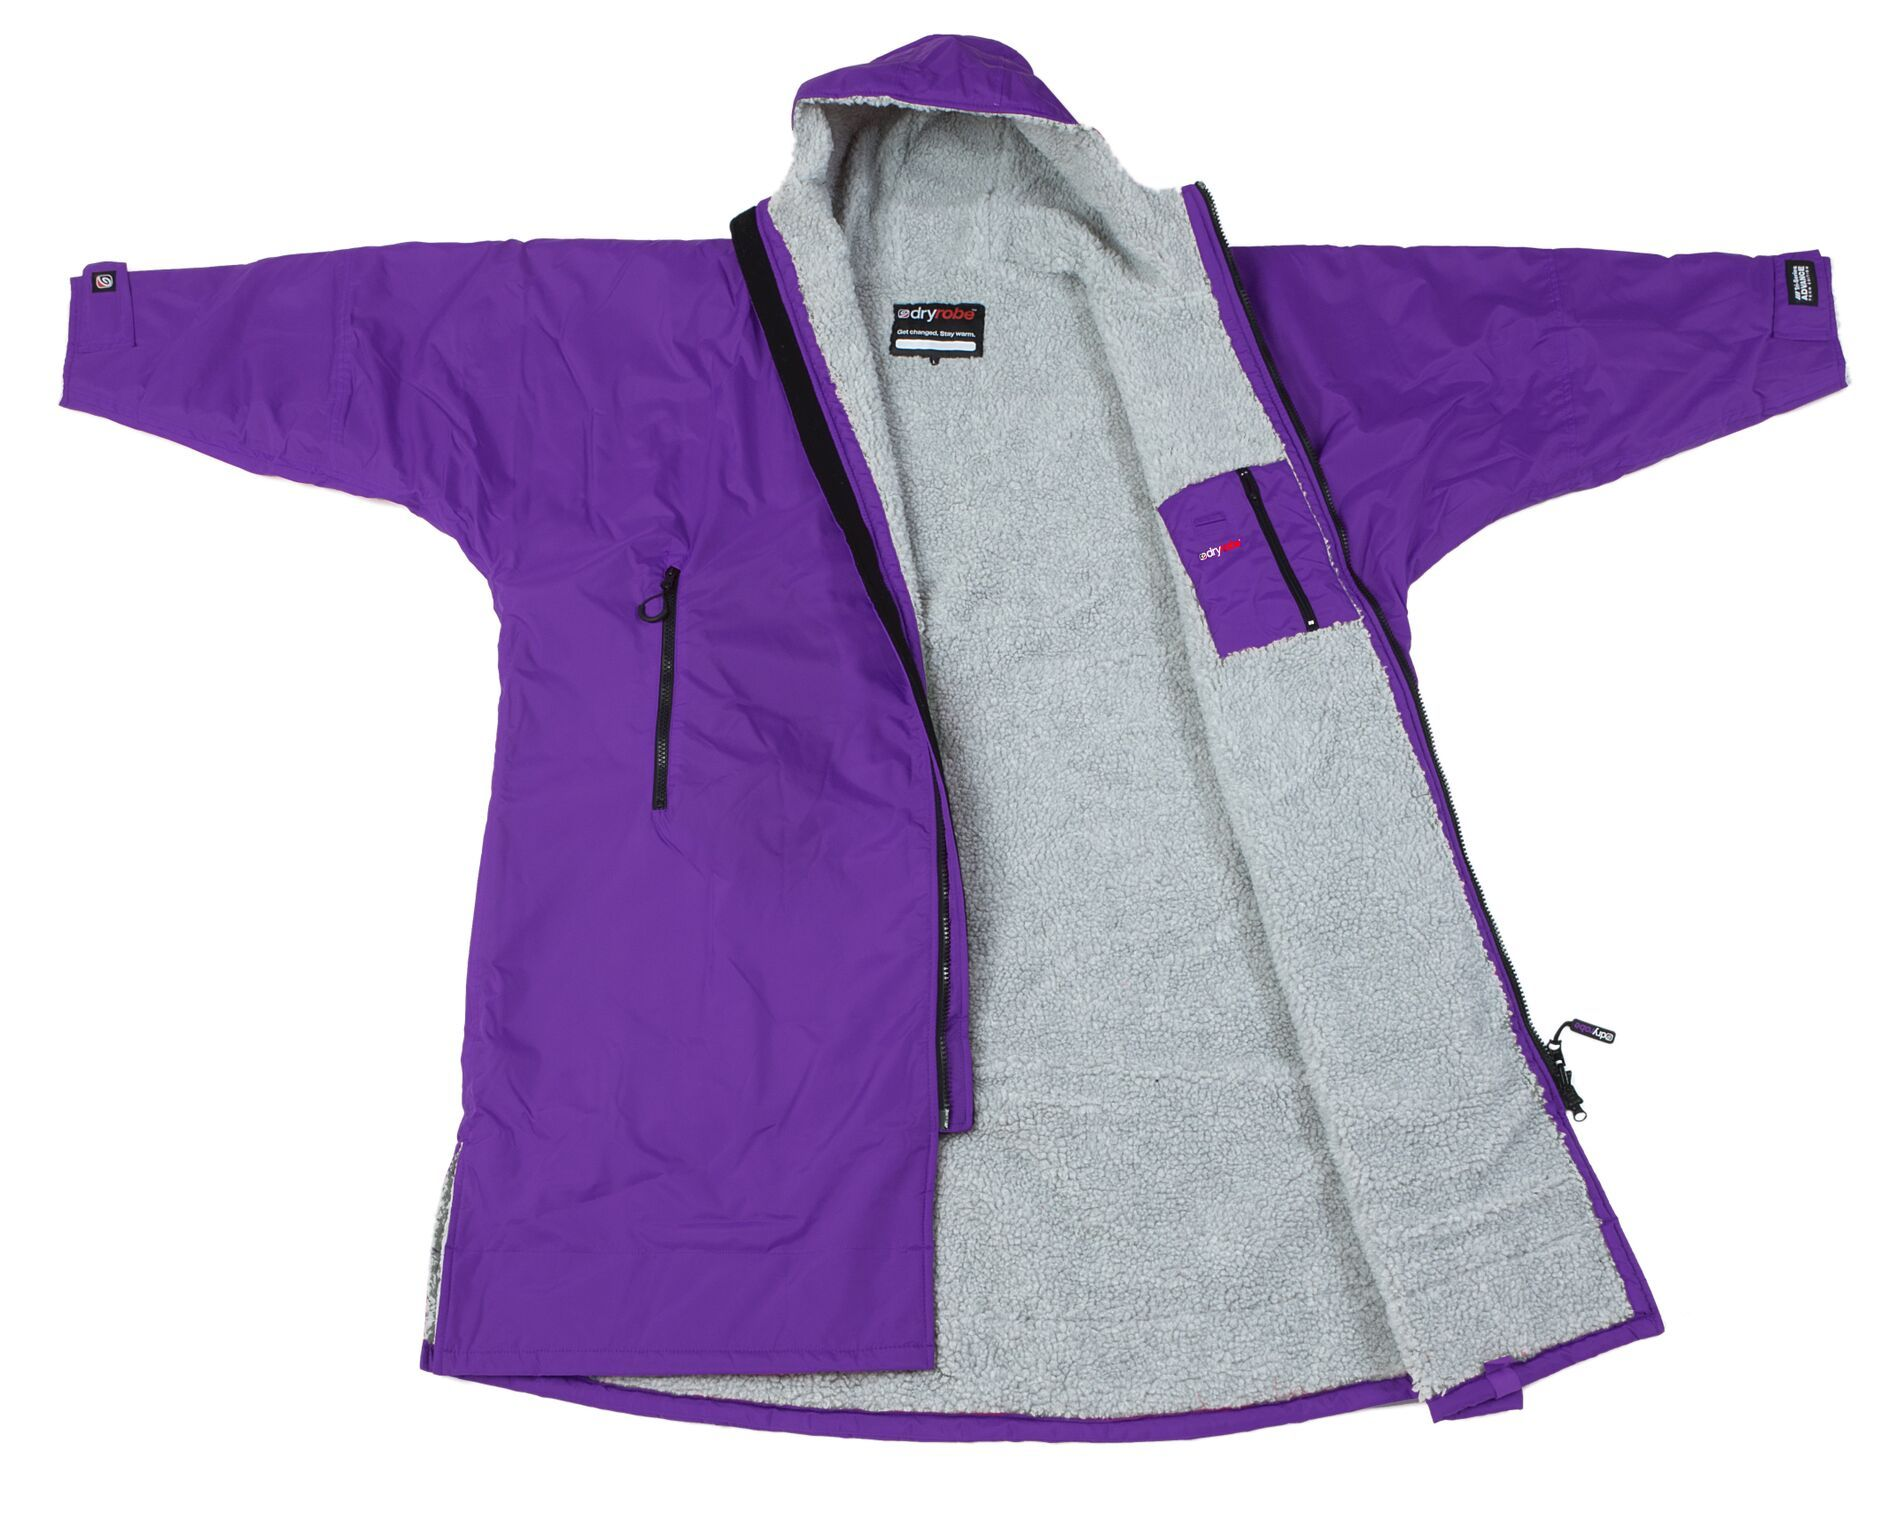 NEW_PURPLE_FLAT__preview_2024x2024